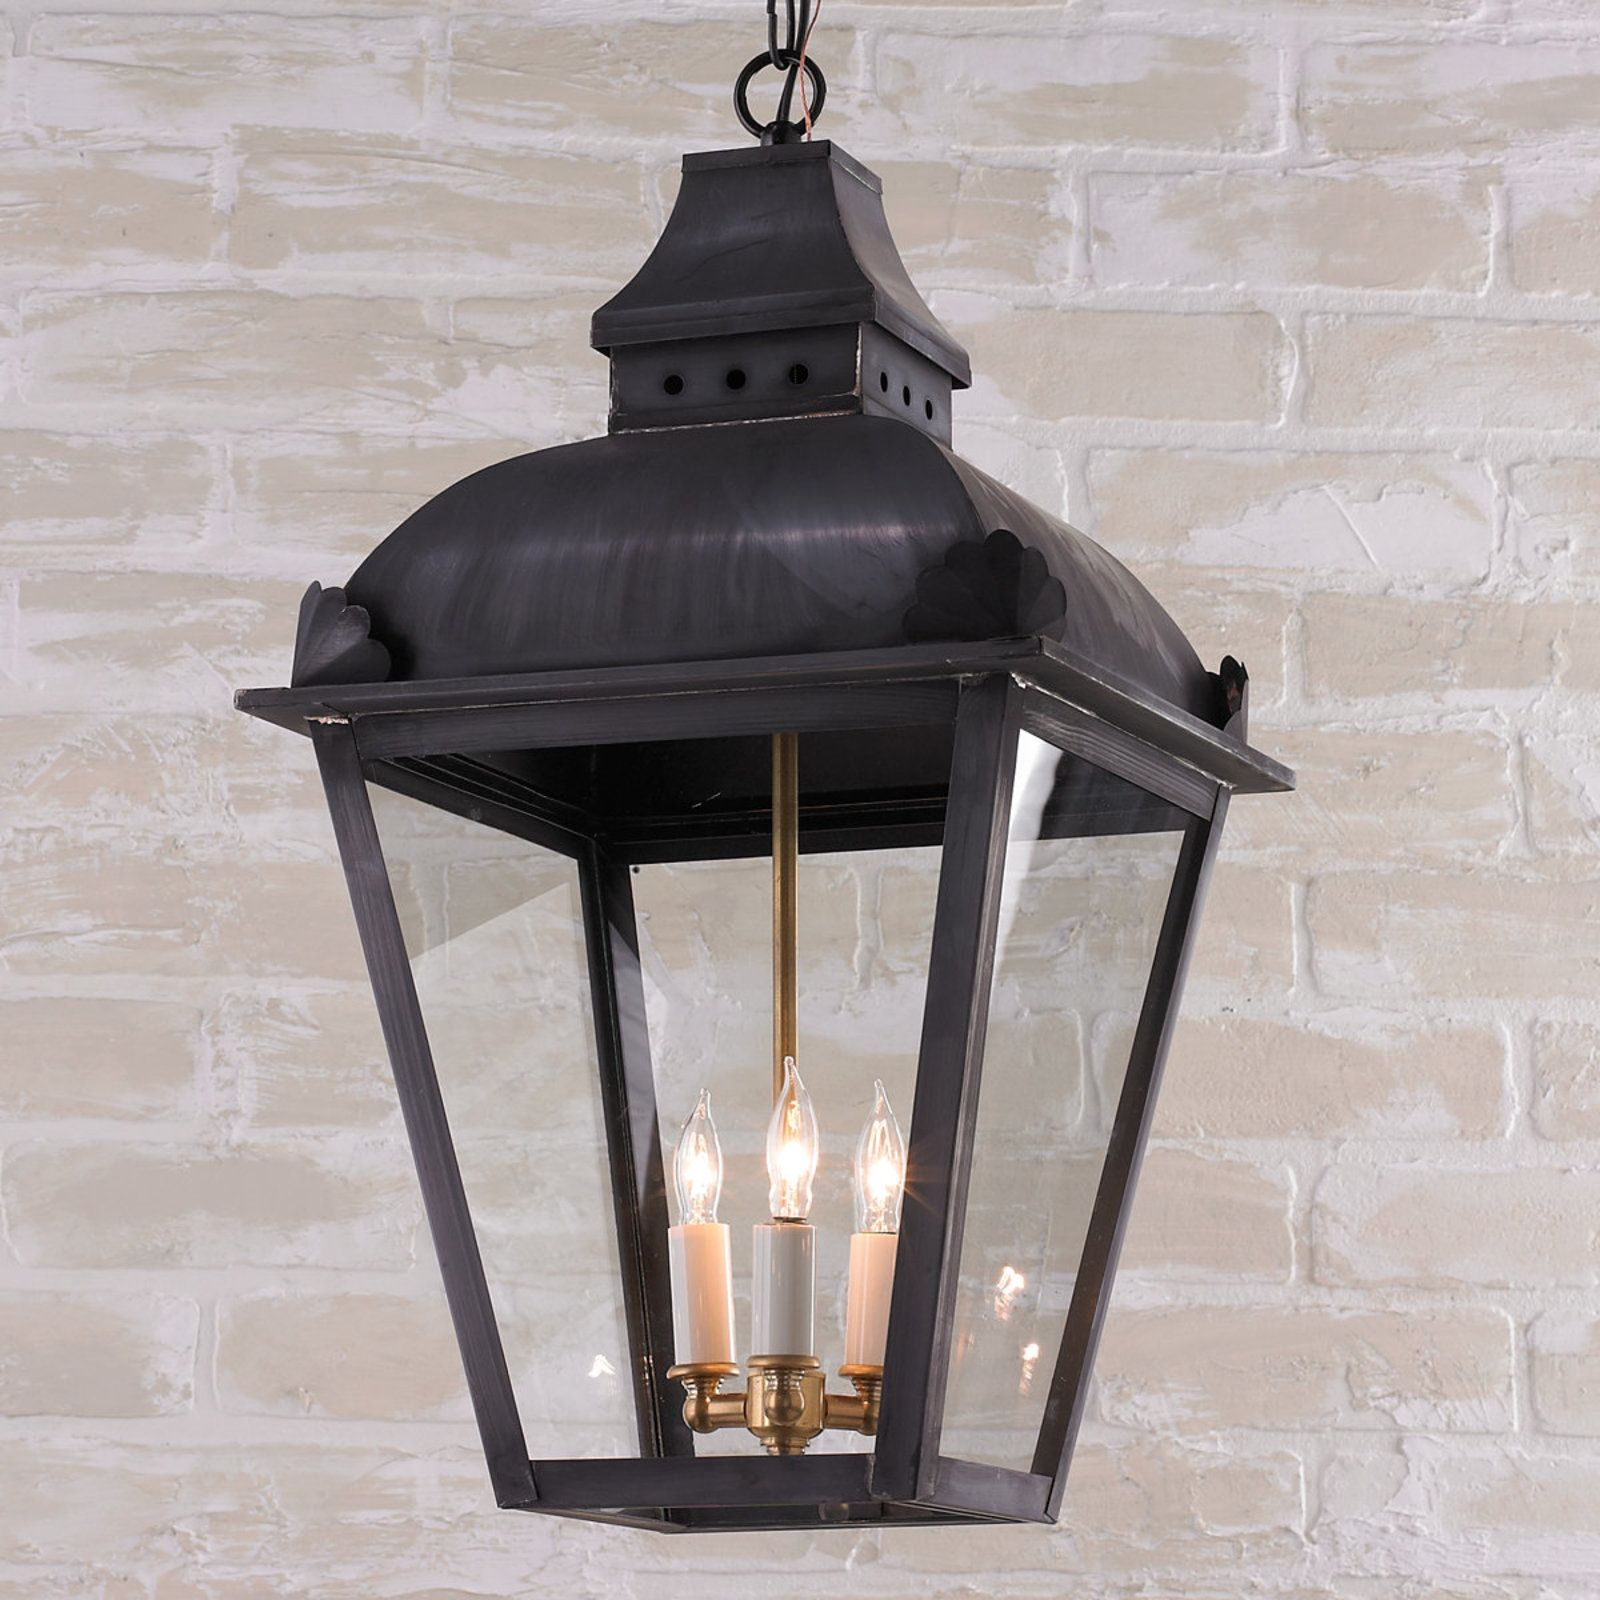 Colonial Era Outdoor Hanging Lantern